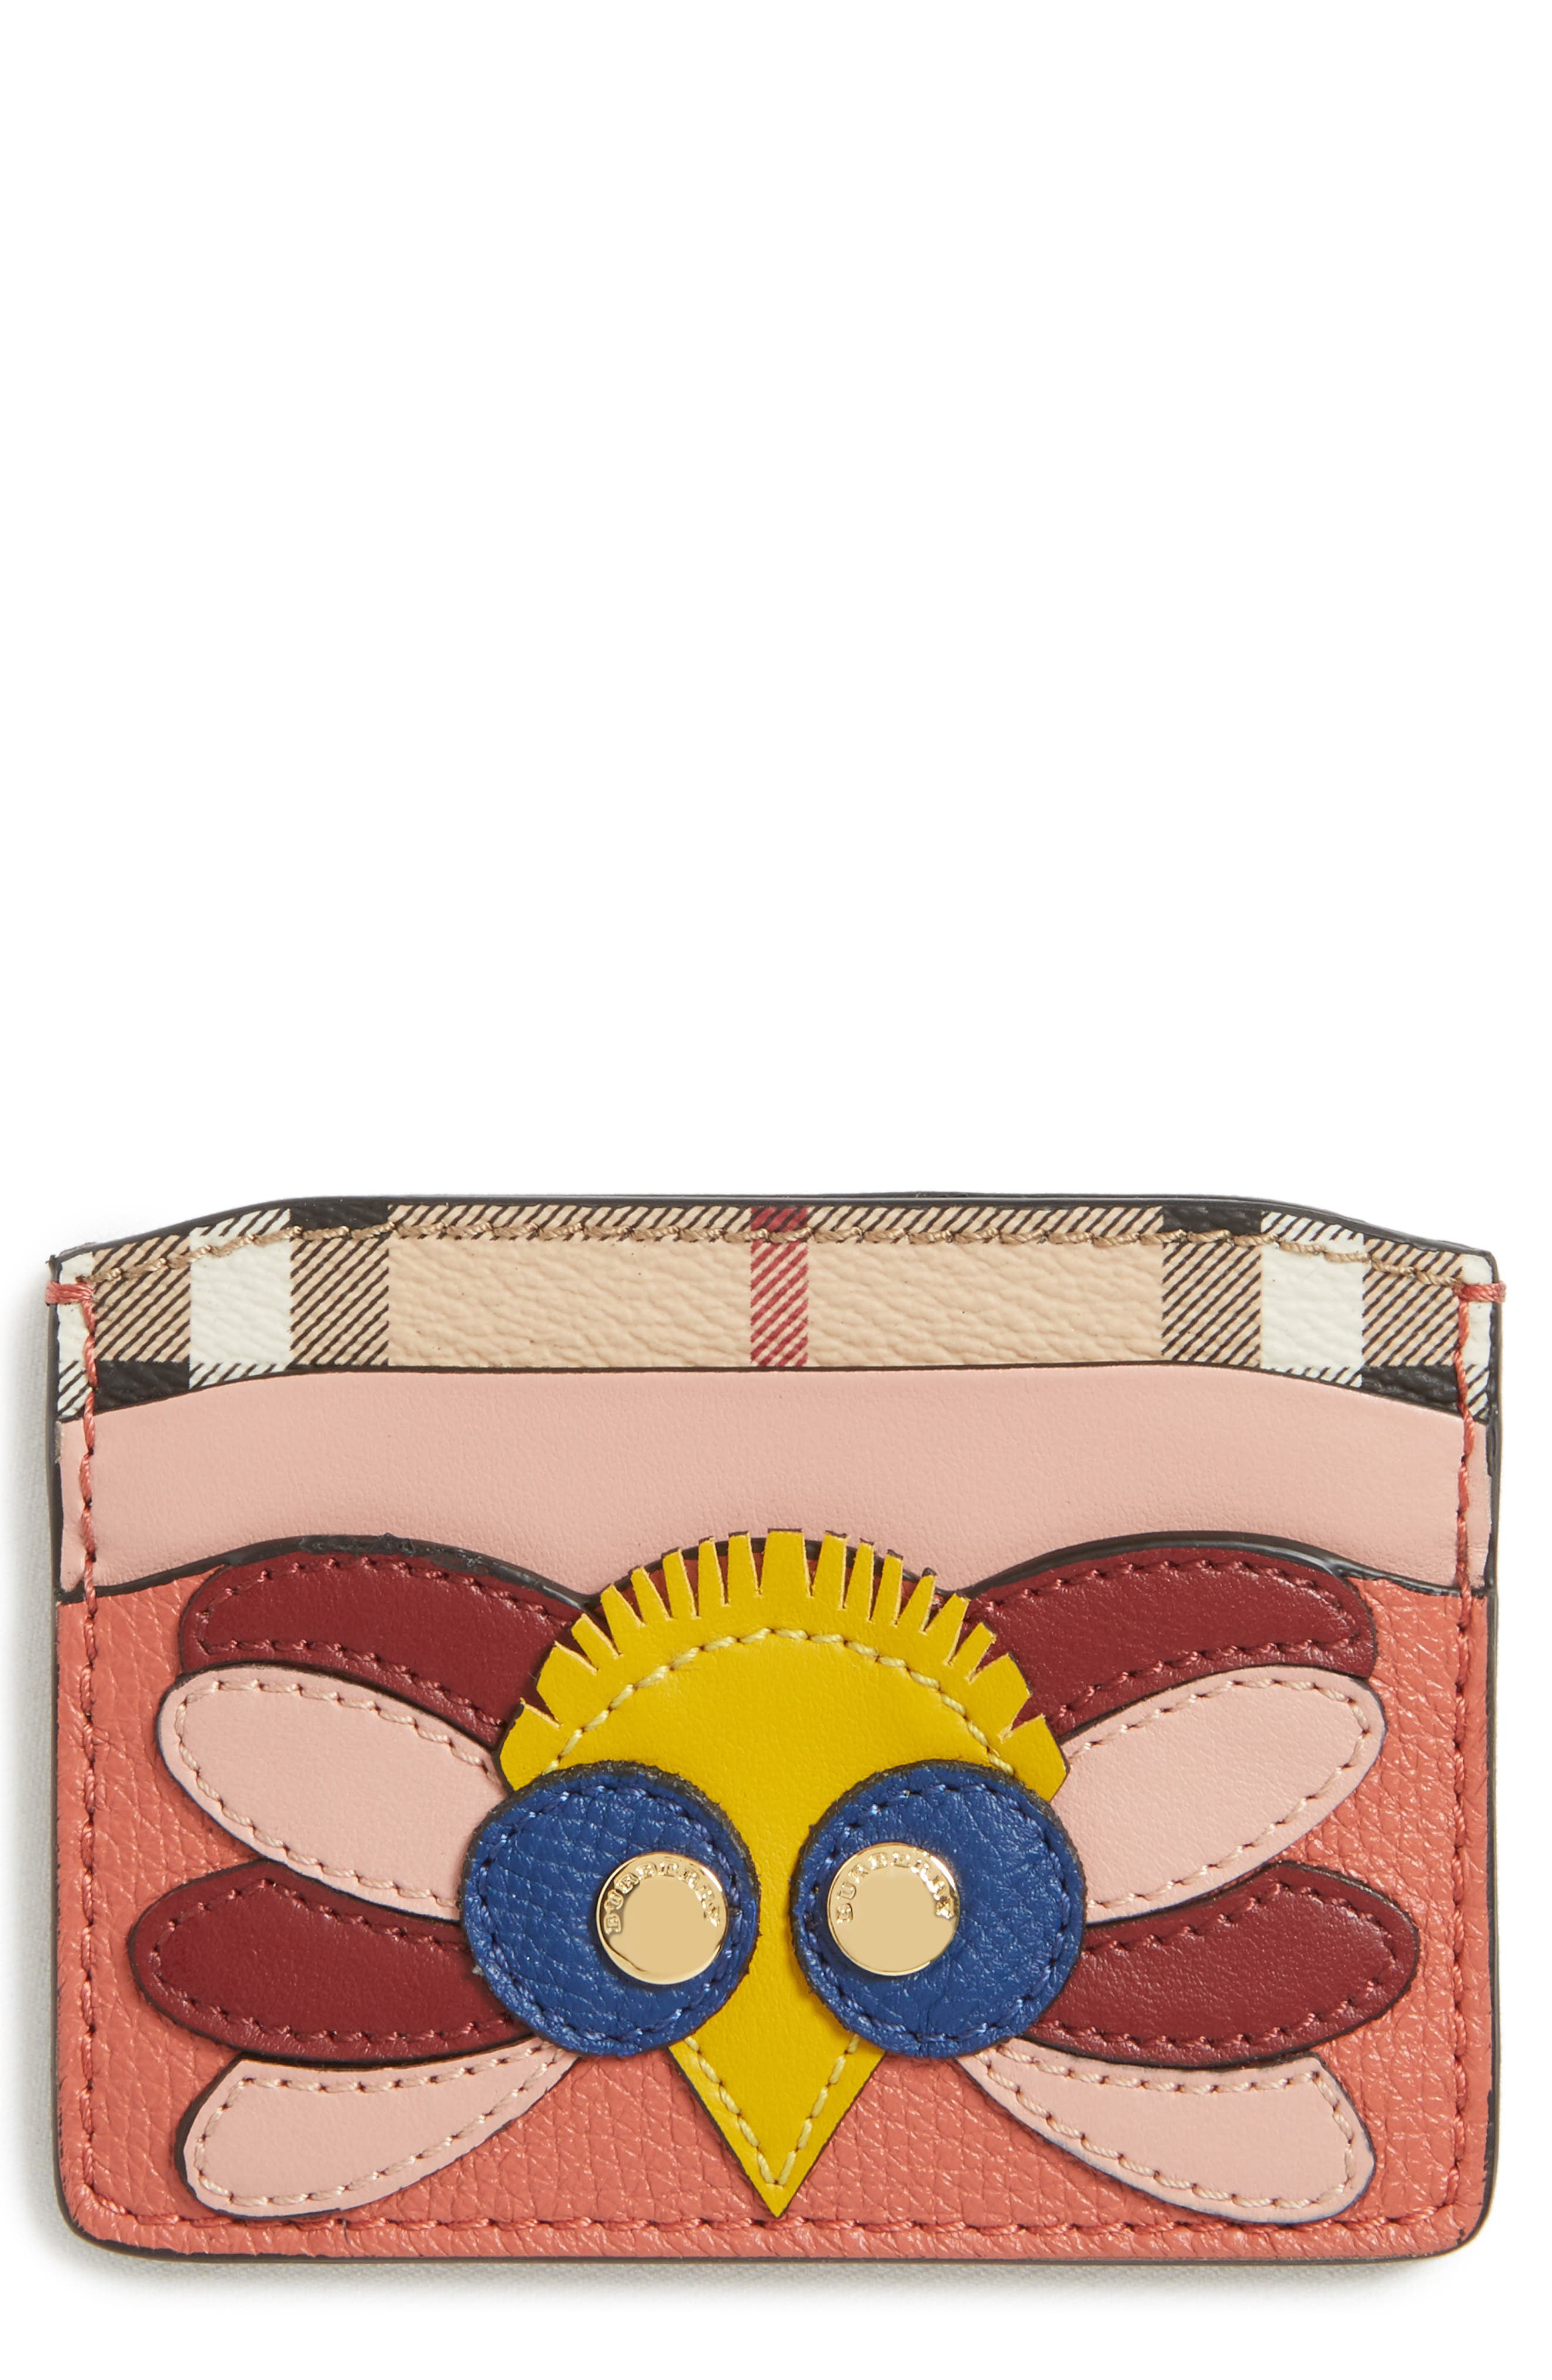 Izzy Beasts Owl Leather Card Case,                             Main thumbnail 1, color,                             603